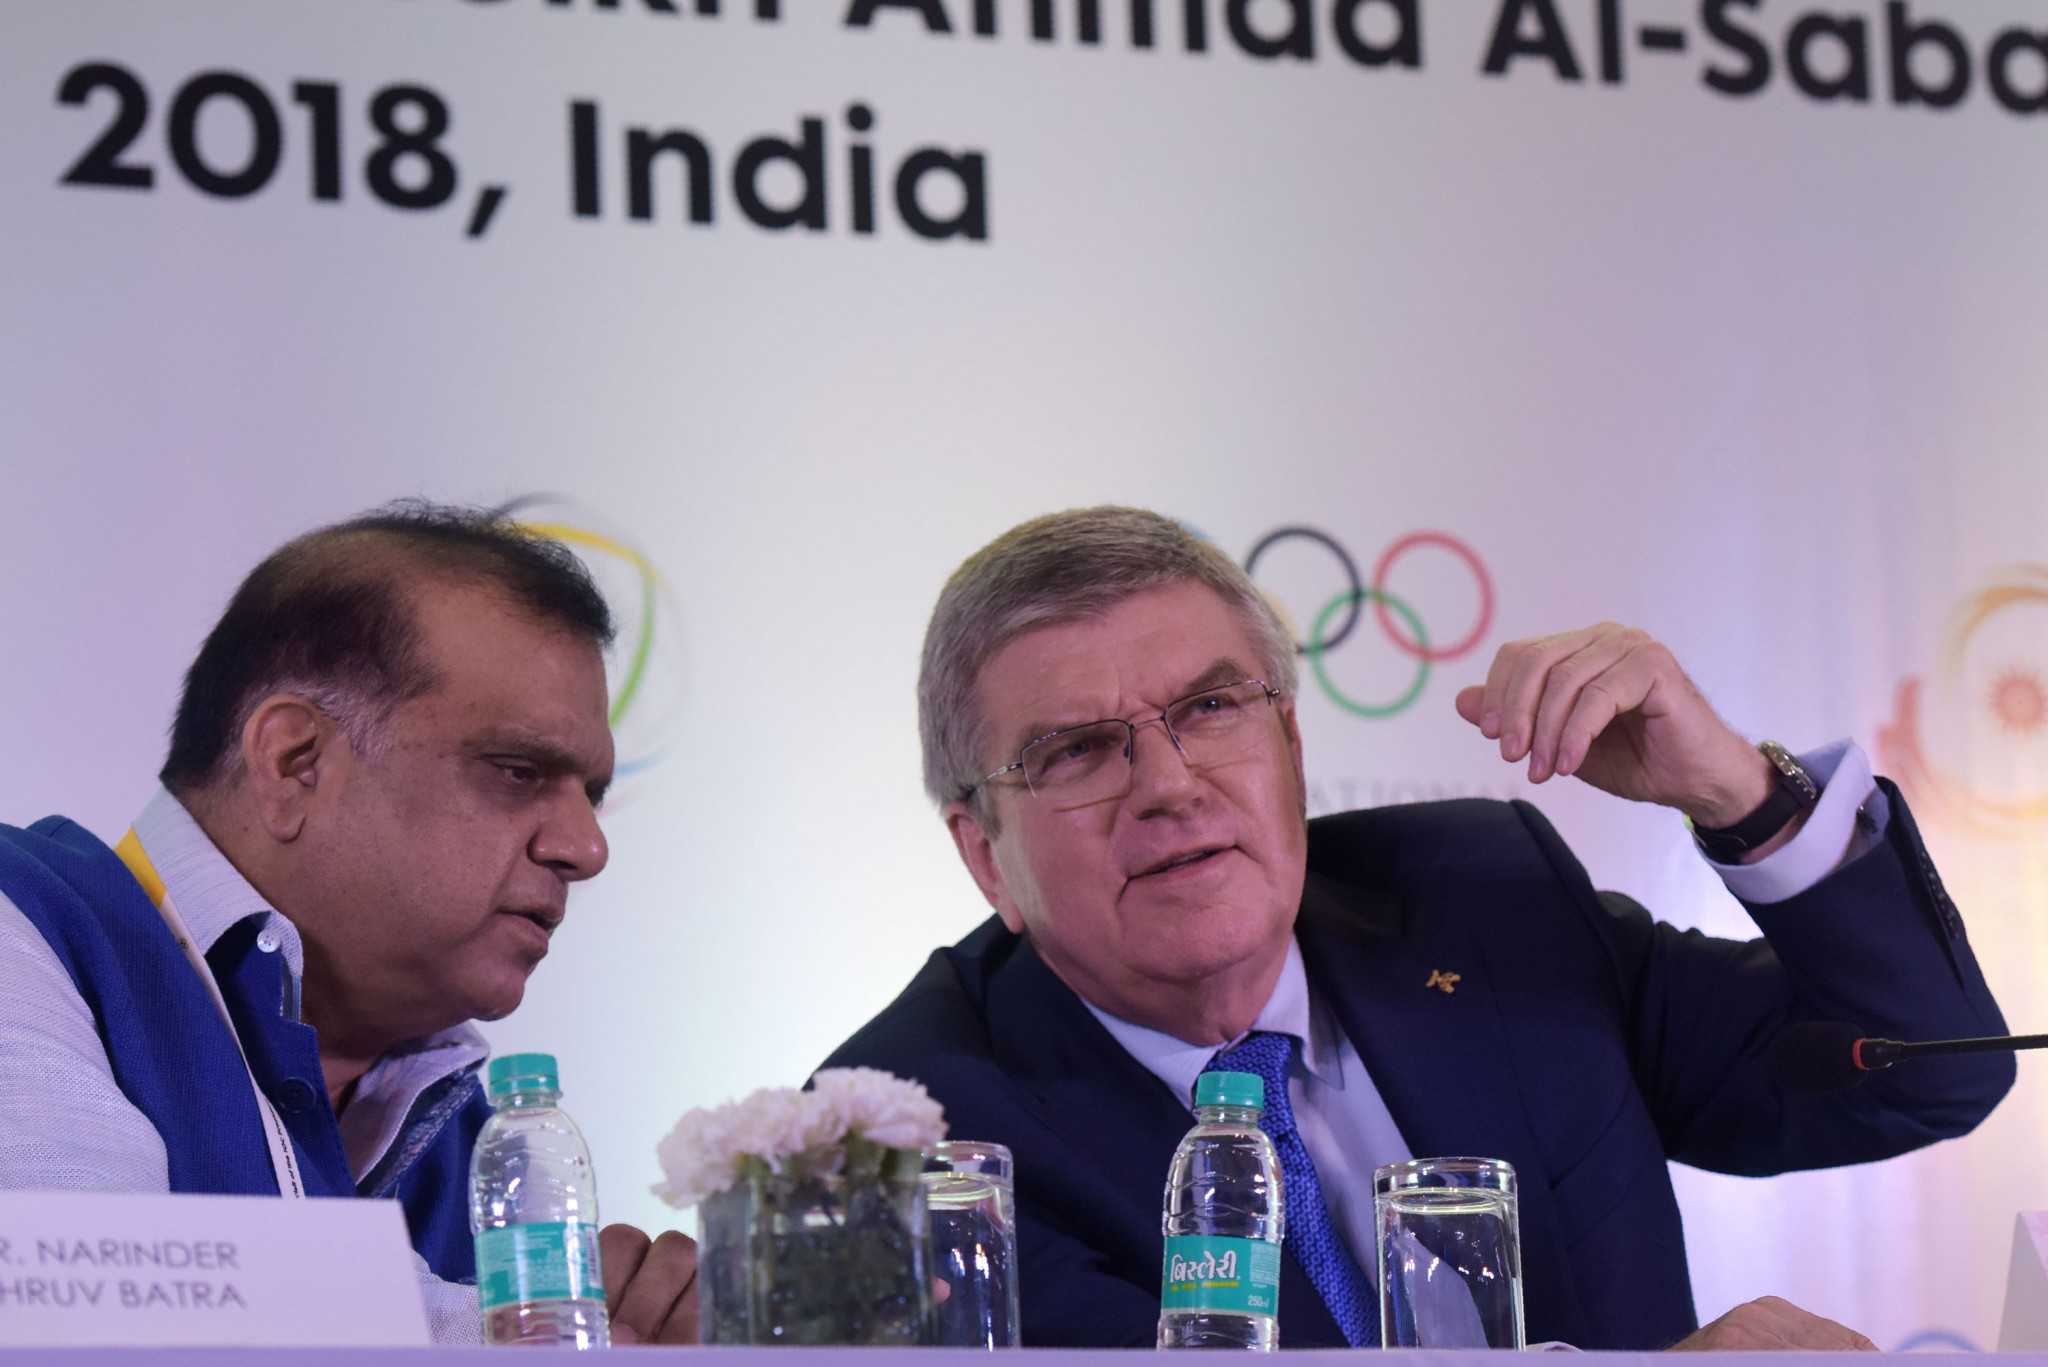 India claims it will bid for 2032 Olympic Games but Bach warns against premature discussions